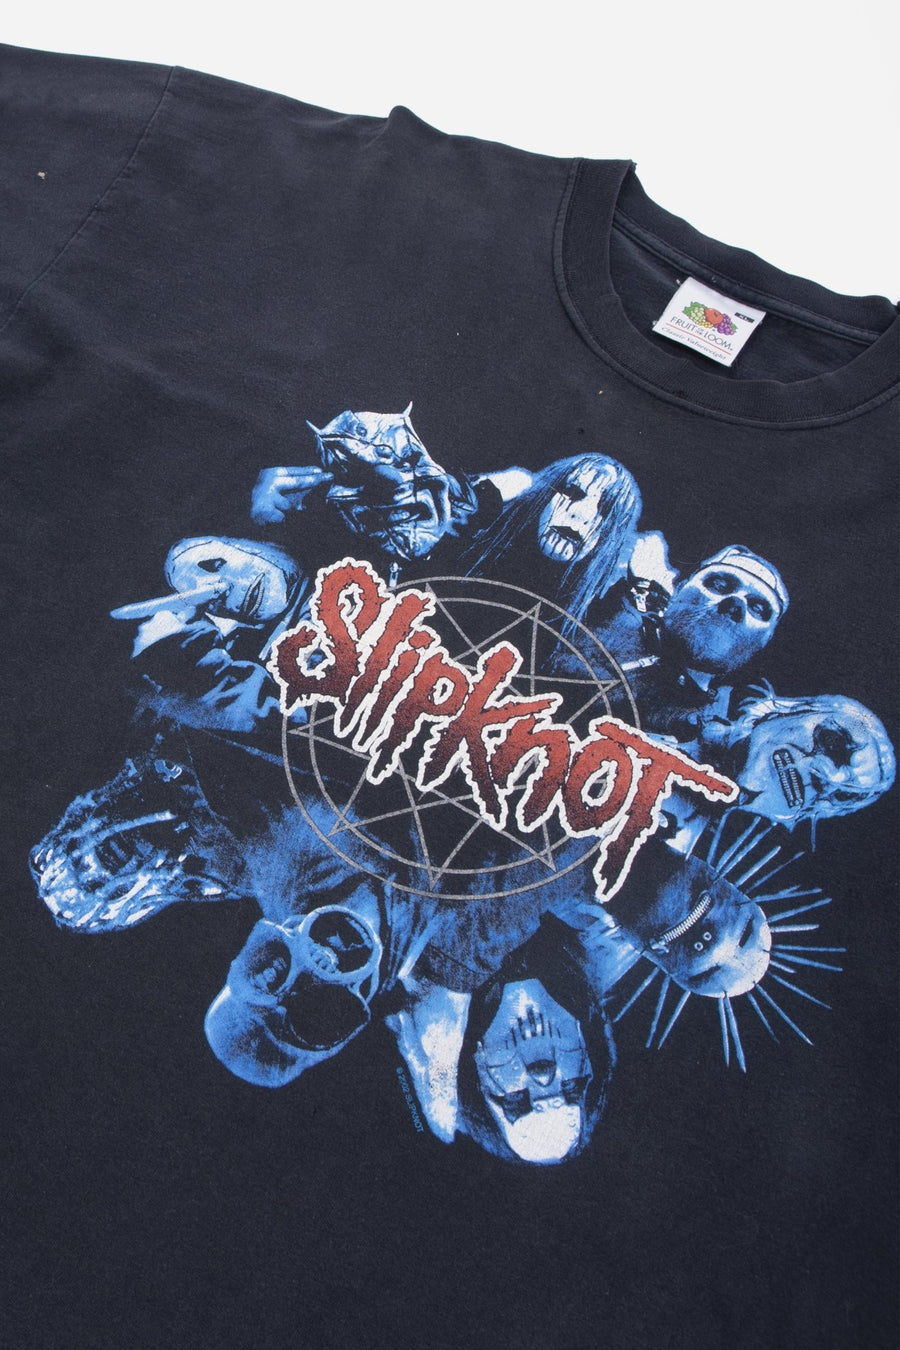 T-shirt Manches Longues Slipknot 2002 - WASTED PARIS